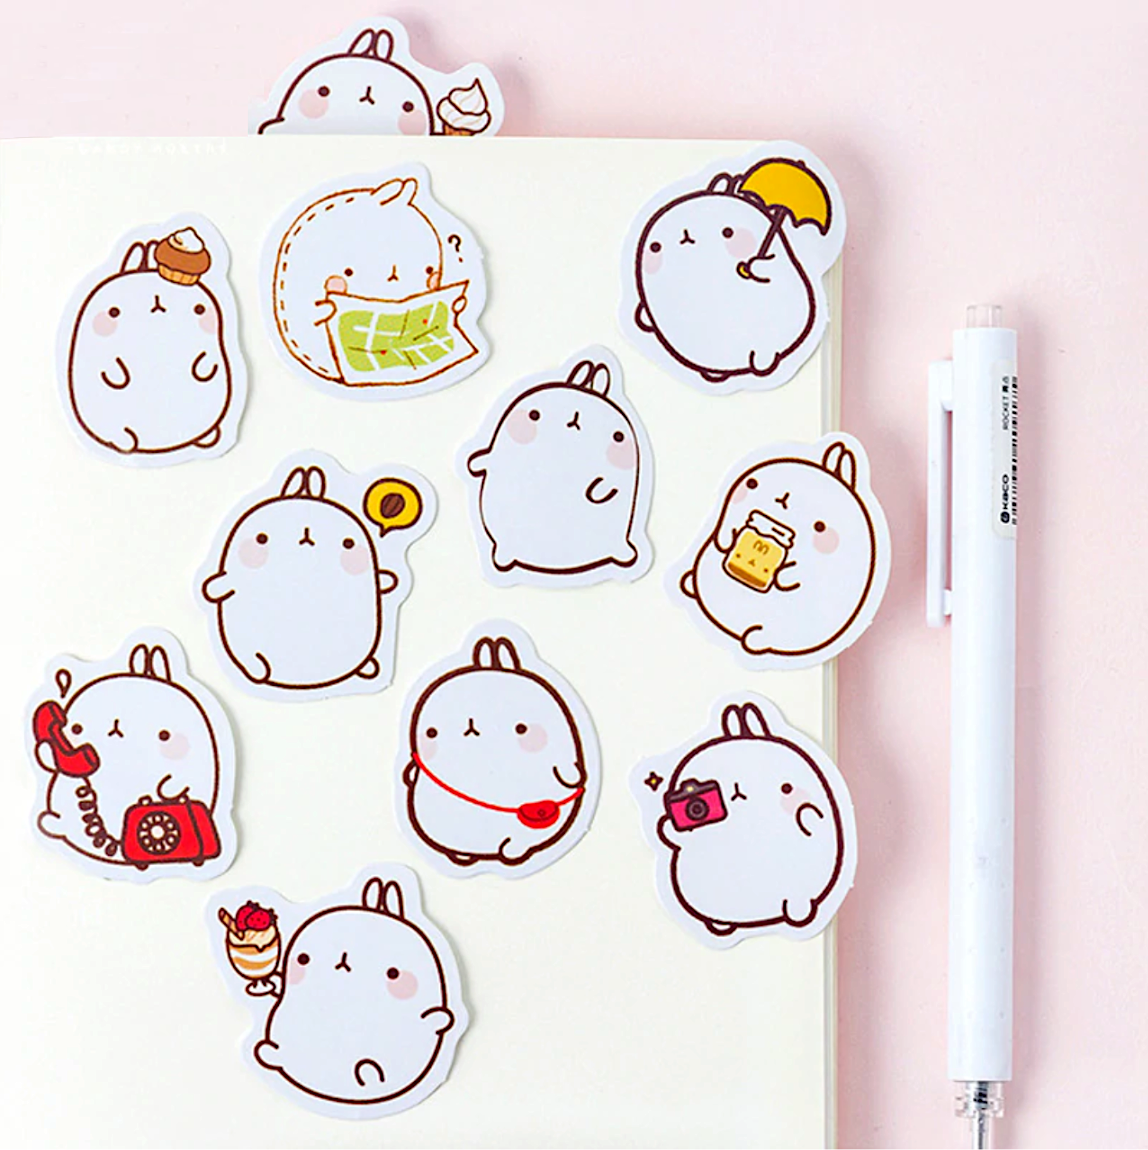 Molang Paper Stickers Kawaii stickers, Cute stickers